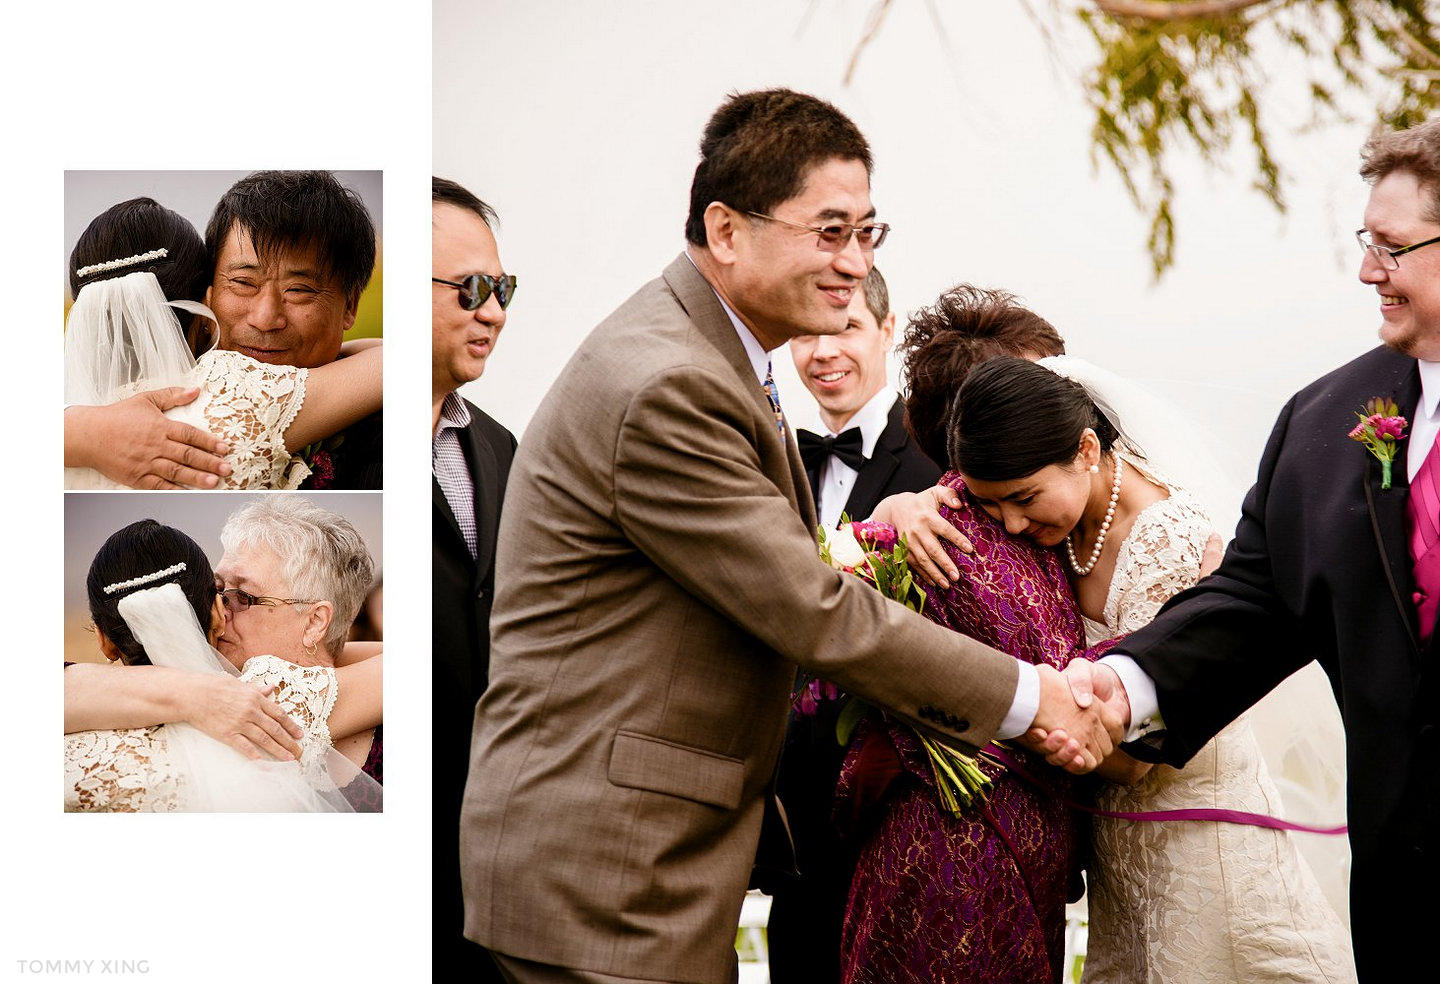 Tommy Xing Photography Seattle CAVE B ESTATE WINERY wedding 西雅图酒庄婚礼 33.jpg